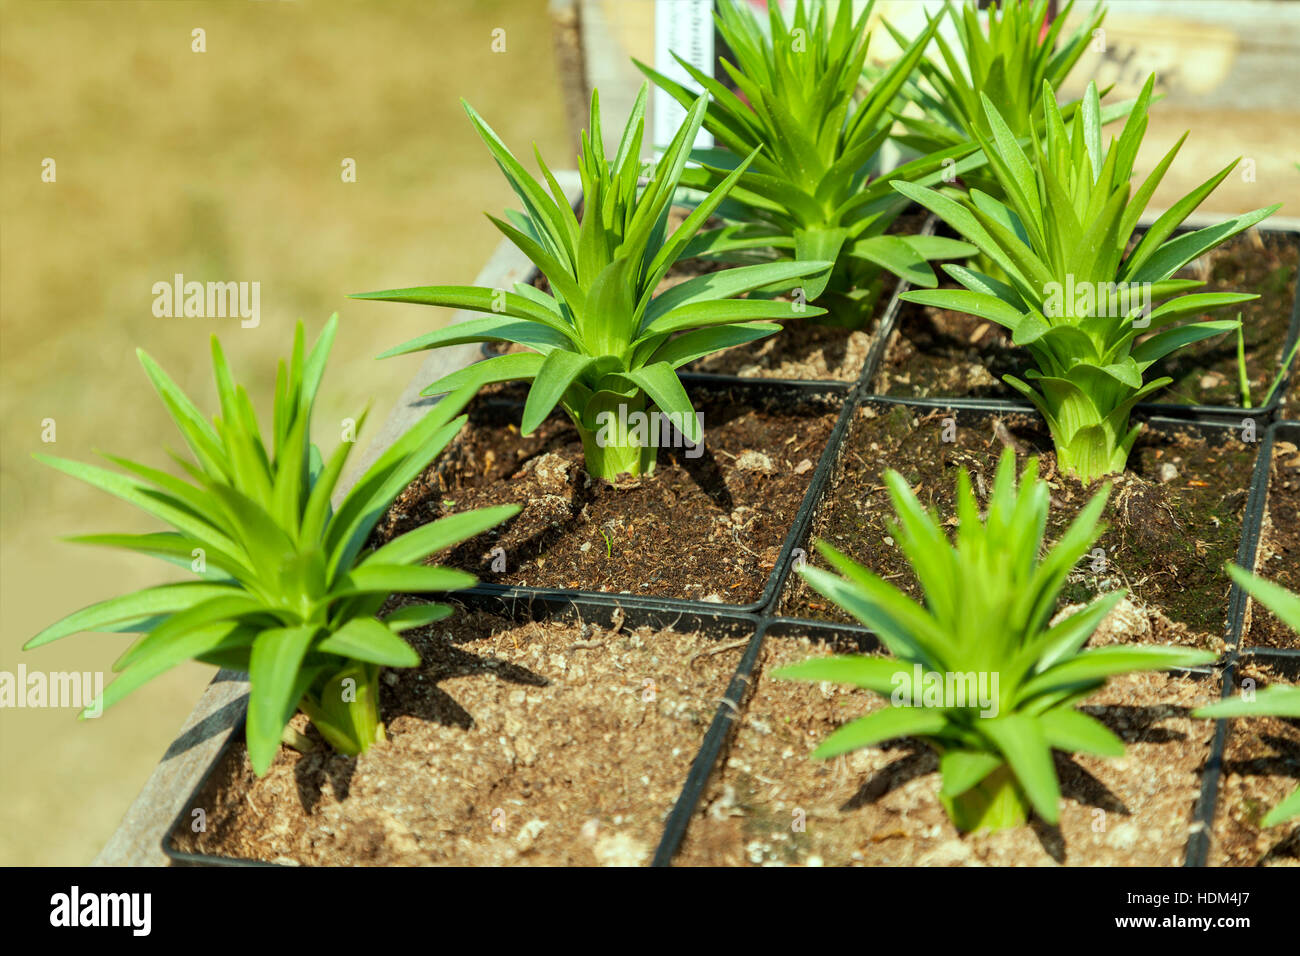 Image of small plant seedlings in a nursery. - Stock Image